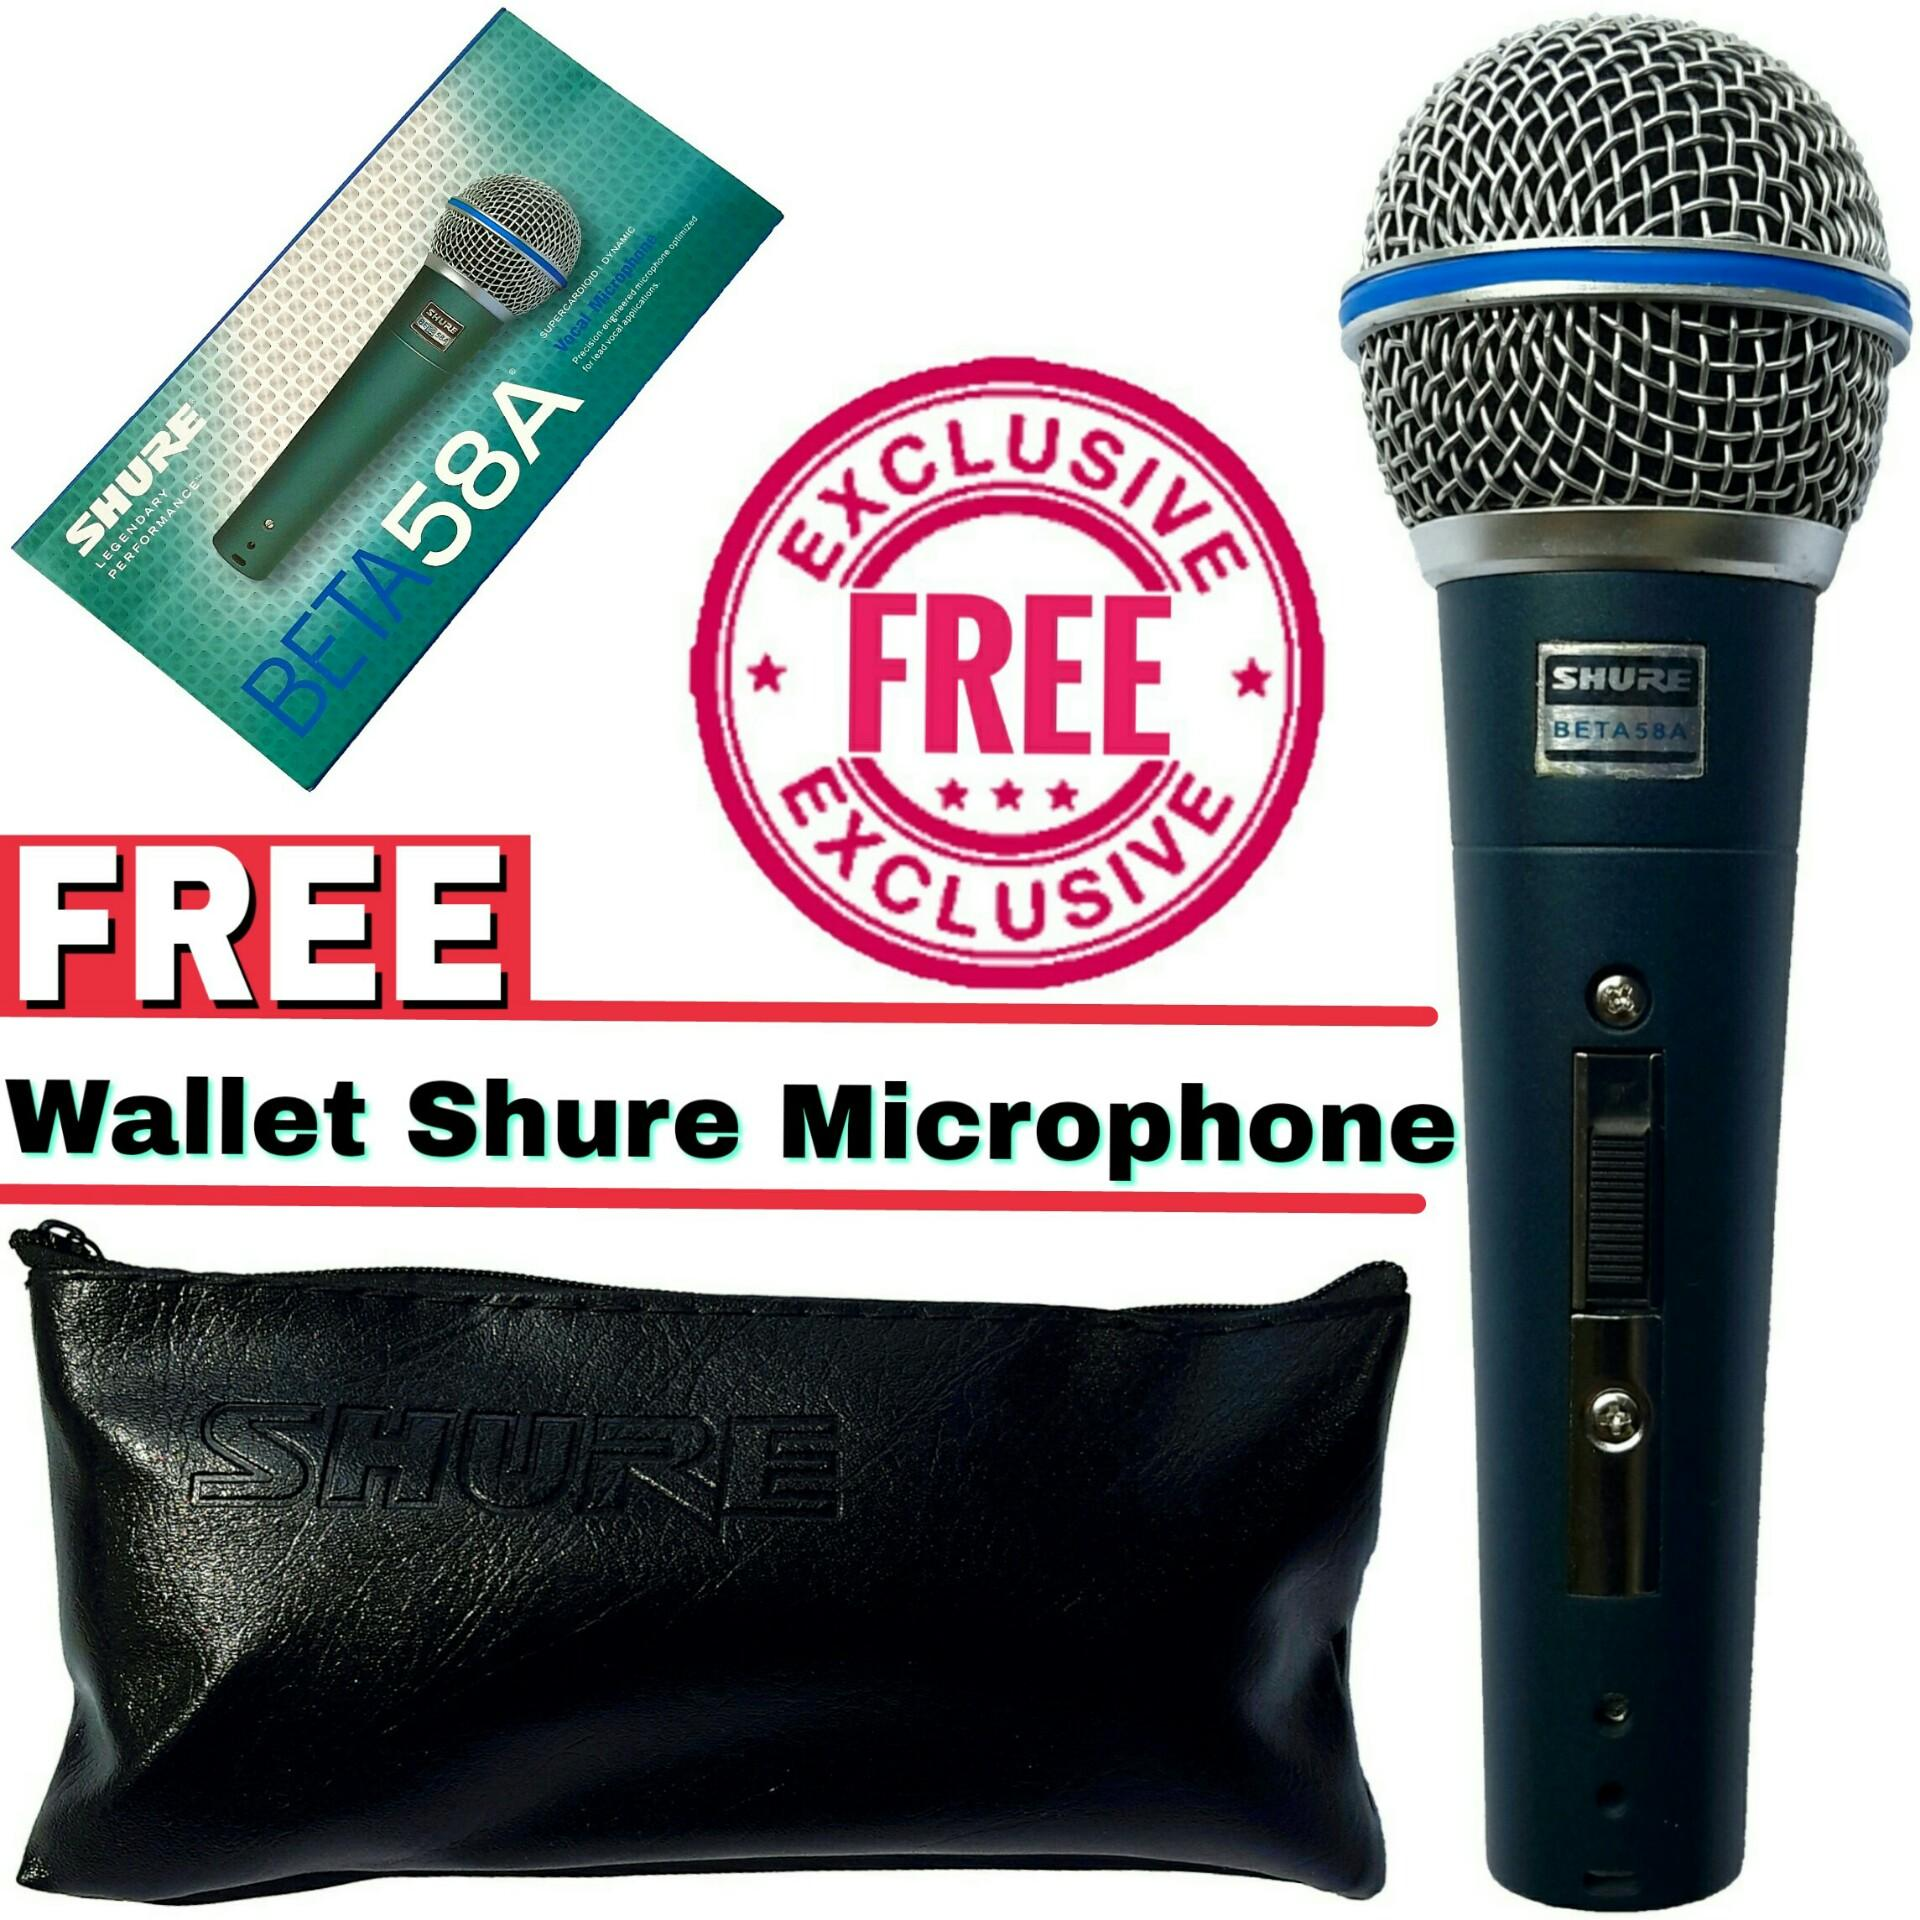 Jual Produk Shure Terbaru Mic Kabel Cina Beta 58a Sk Plus Switch On Off Supercardioid Dynamic Vocal Microphone